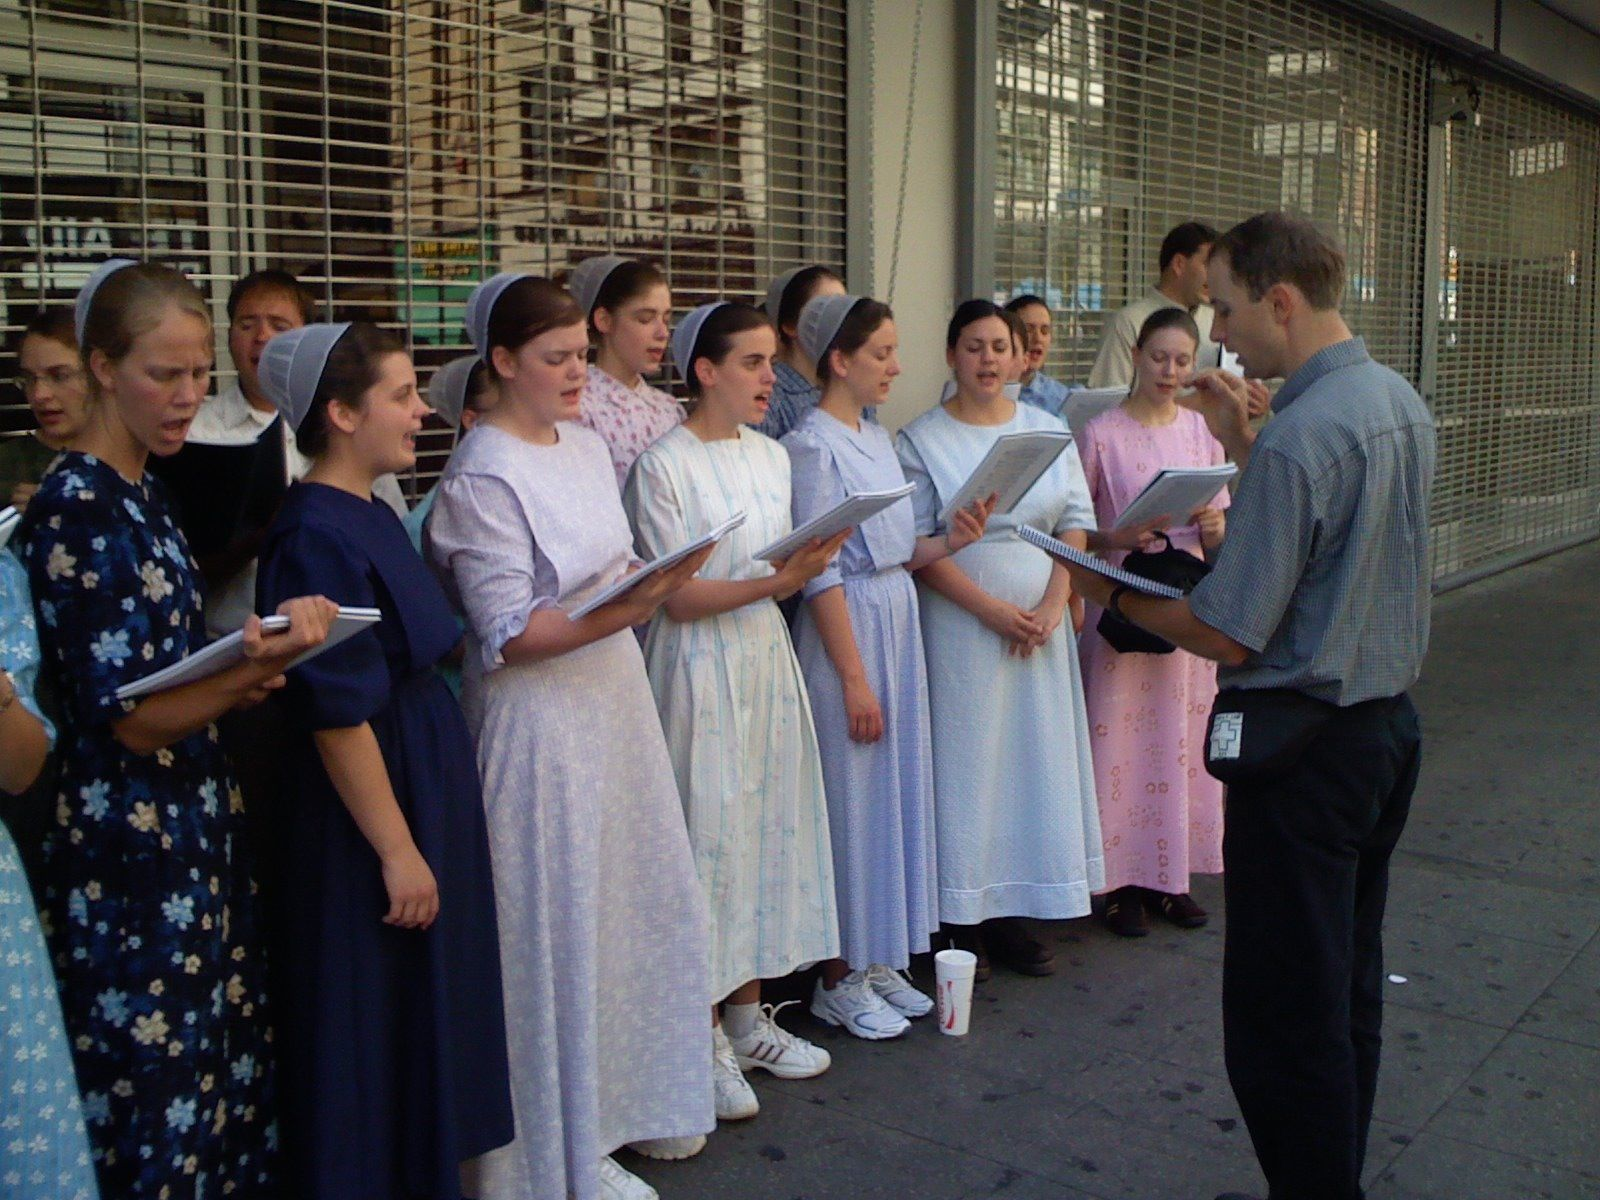 Mennonites are well known for their love of singing